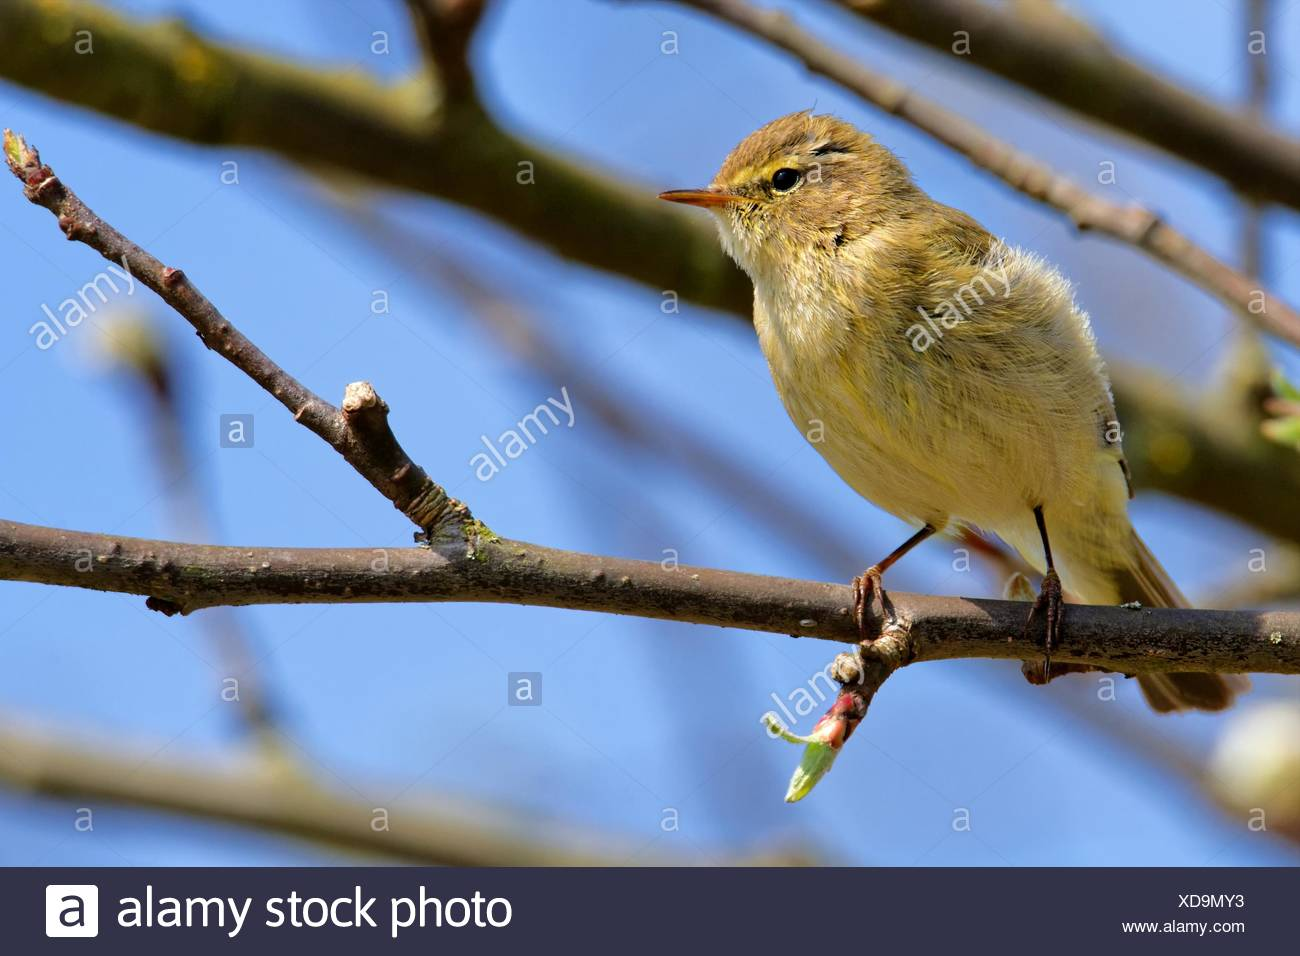 chiffchaff in a tree - Stock Image